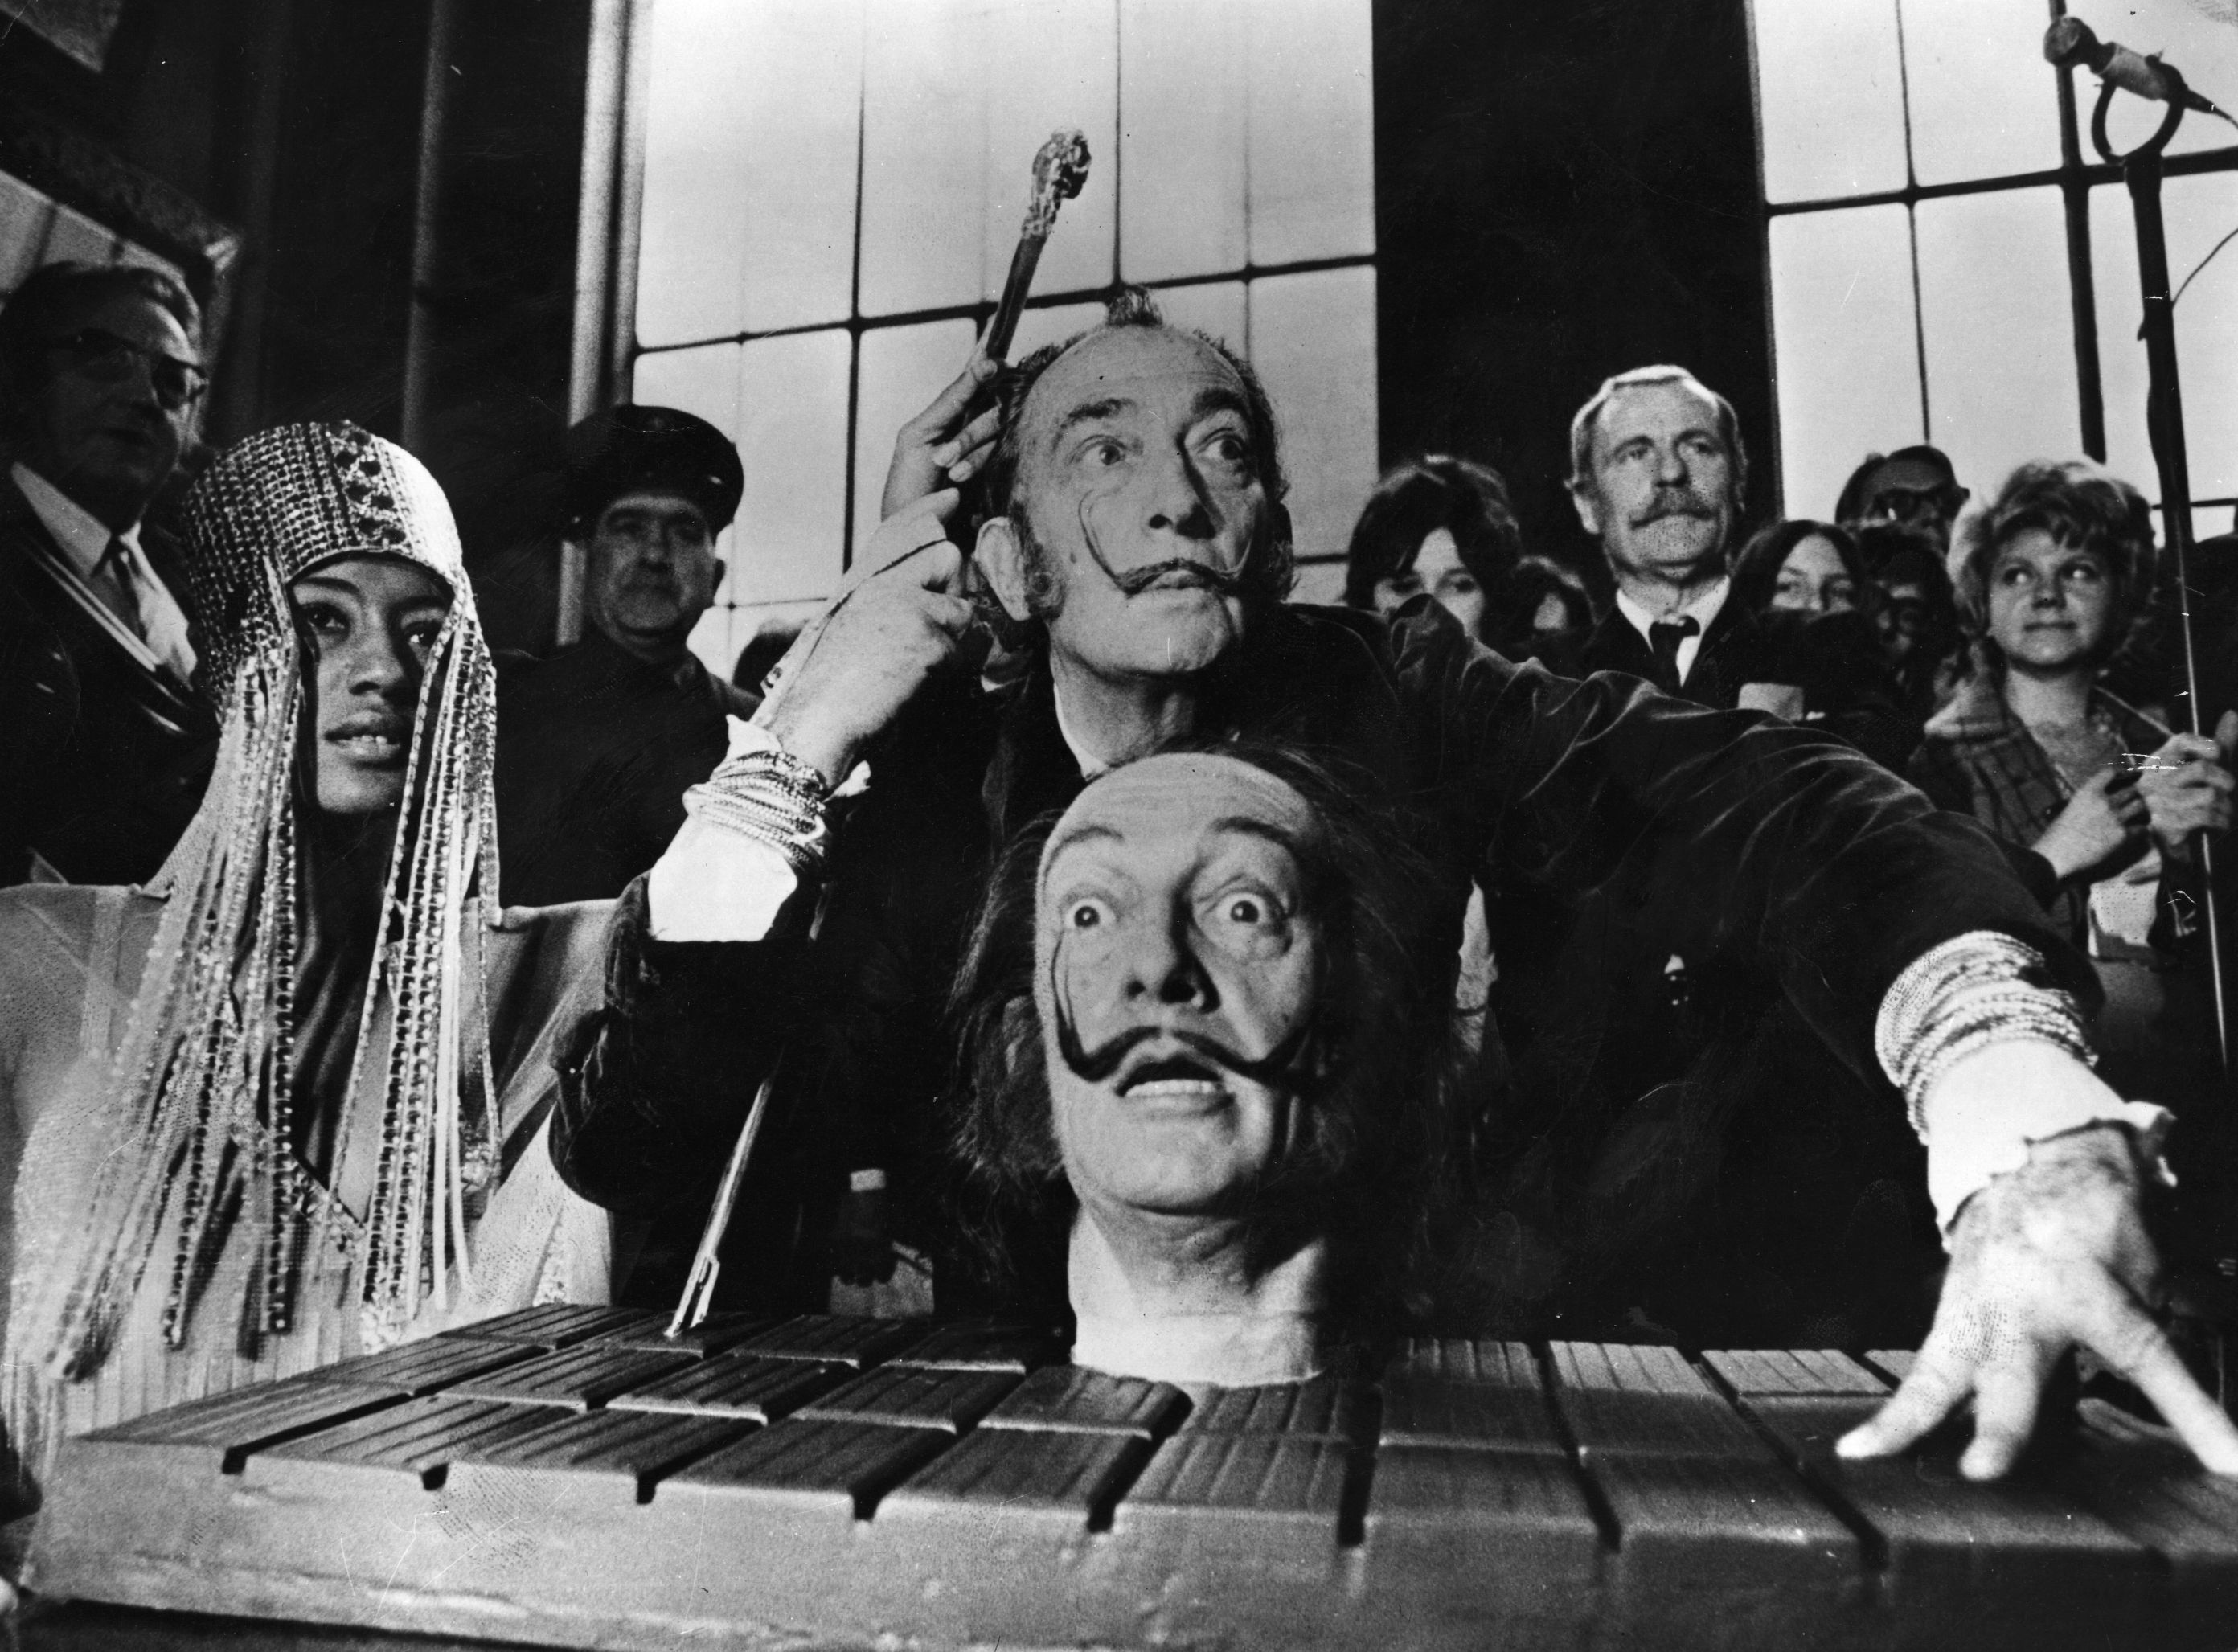 You Can Talk & Take Selfies With an Artificial Intelligence Version of Salvador Dalí at This Museum